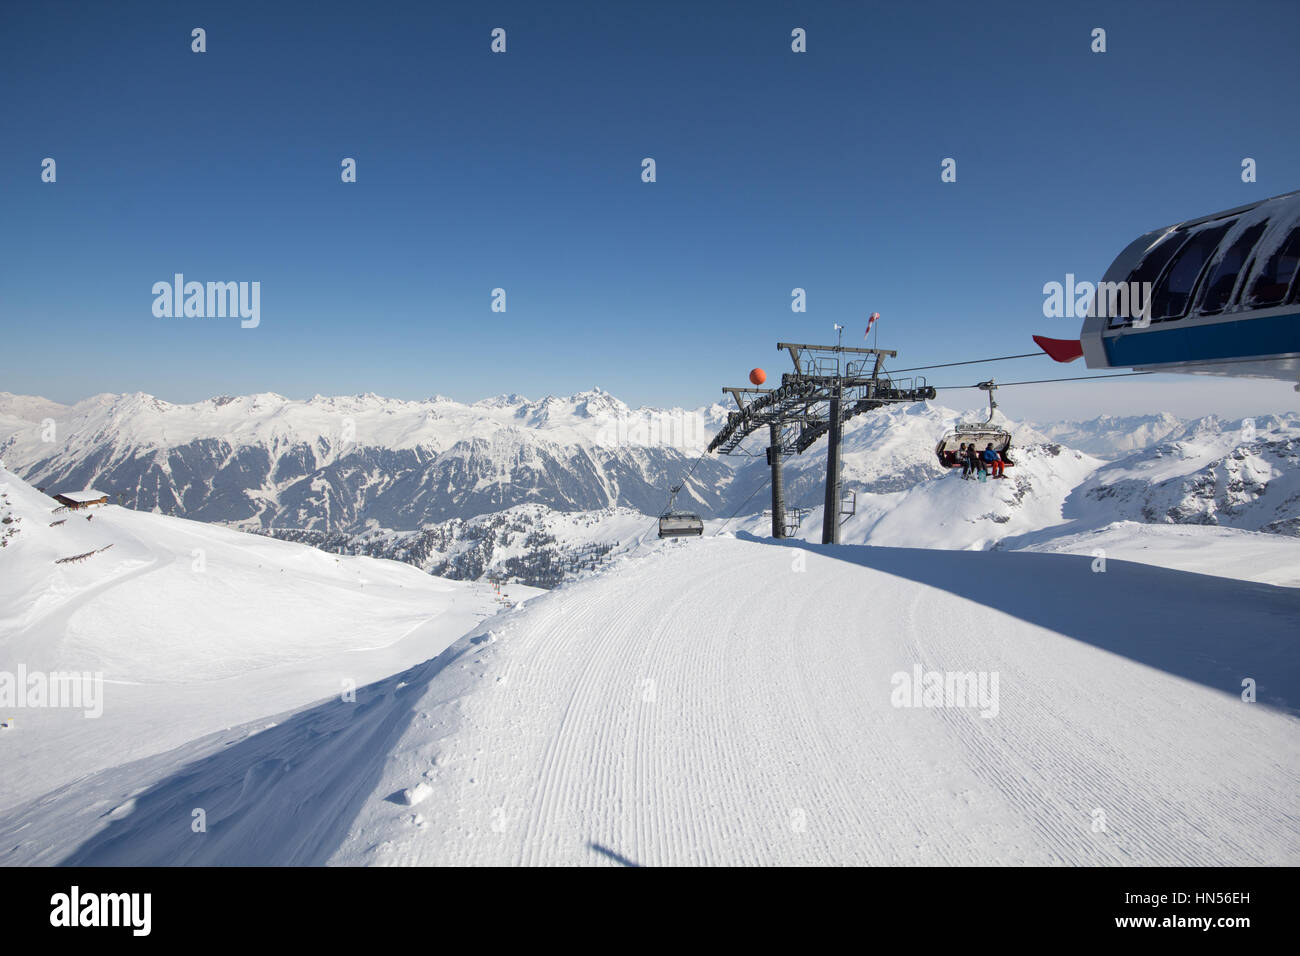 schruns ski resort austria stock photos & schruns ski resort austria